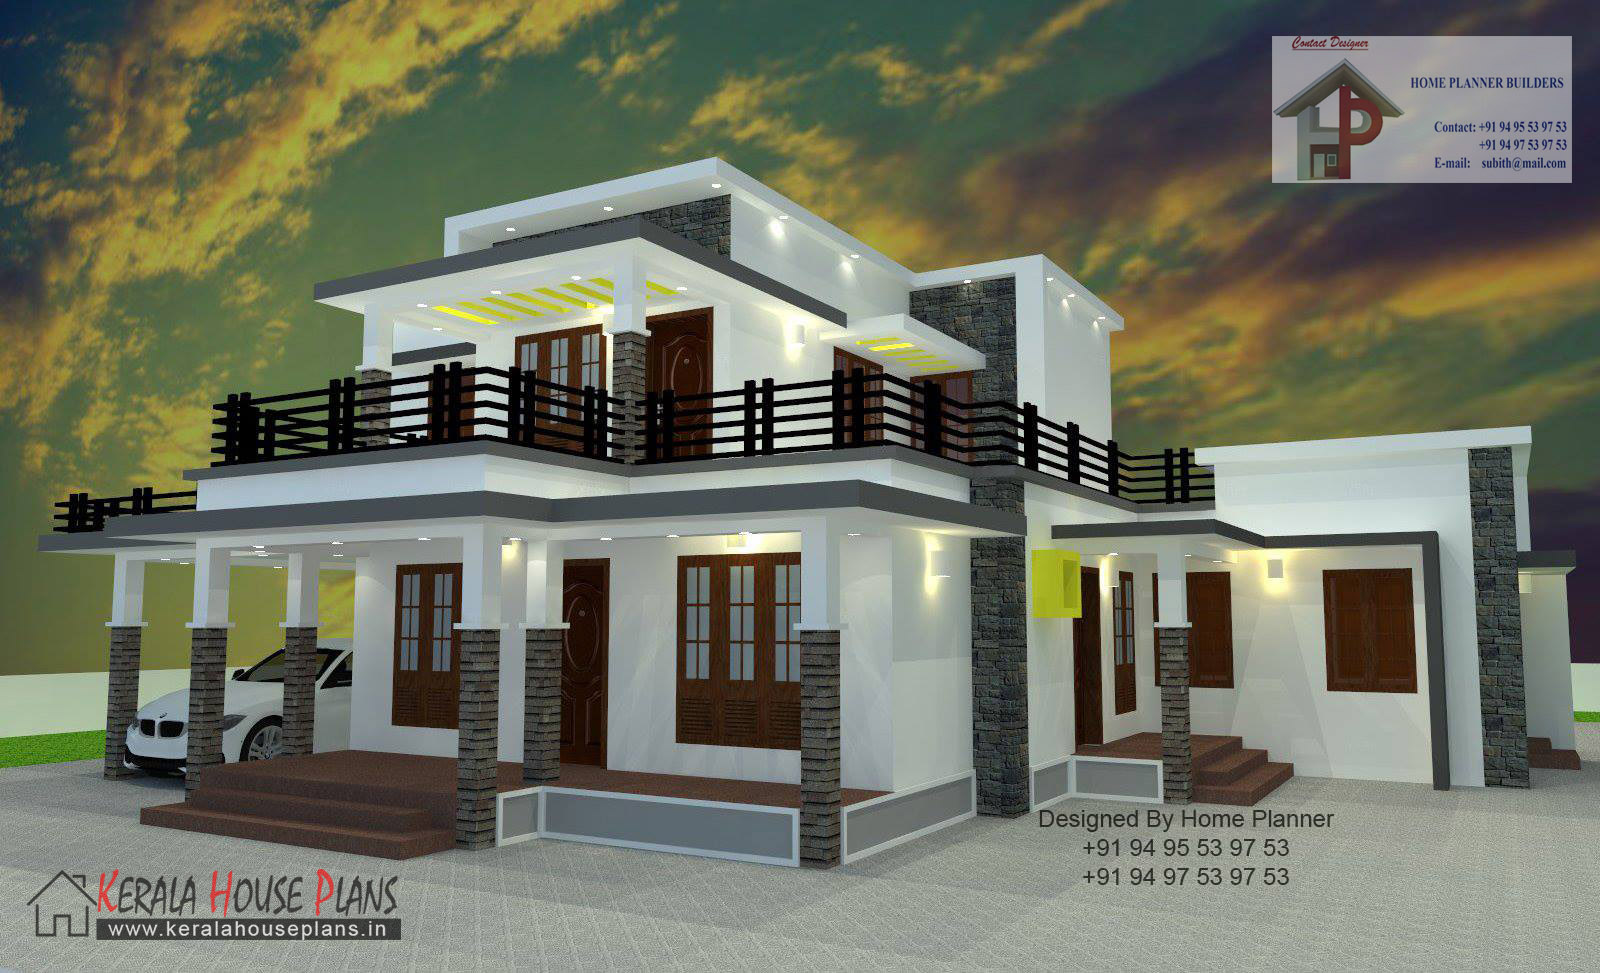 2000 sqft box type house kerala house plans designs for House models and plans